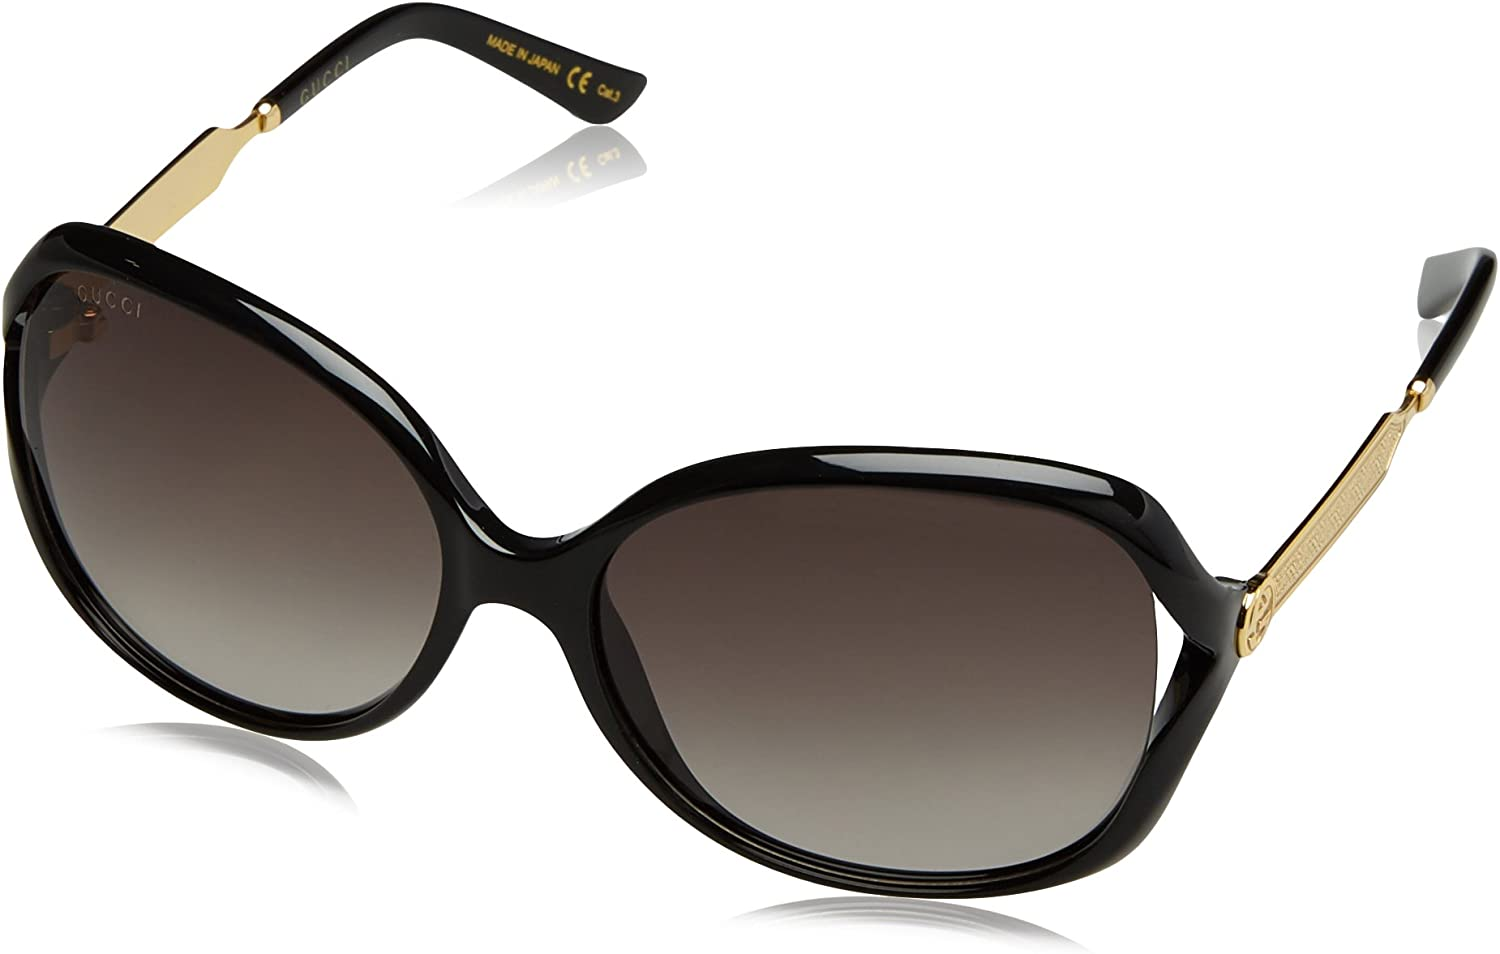 Gucci Women's GG0076S Fashion Sunglasses 60mm